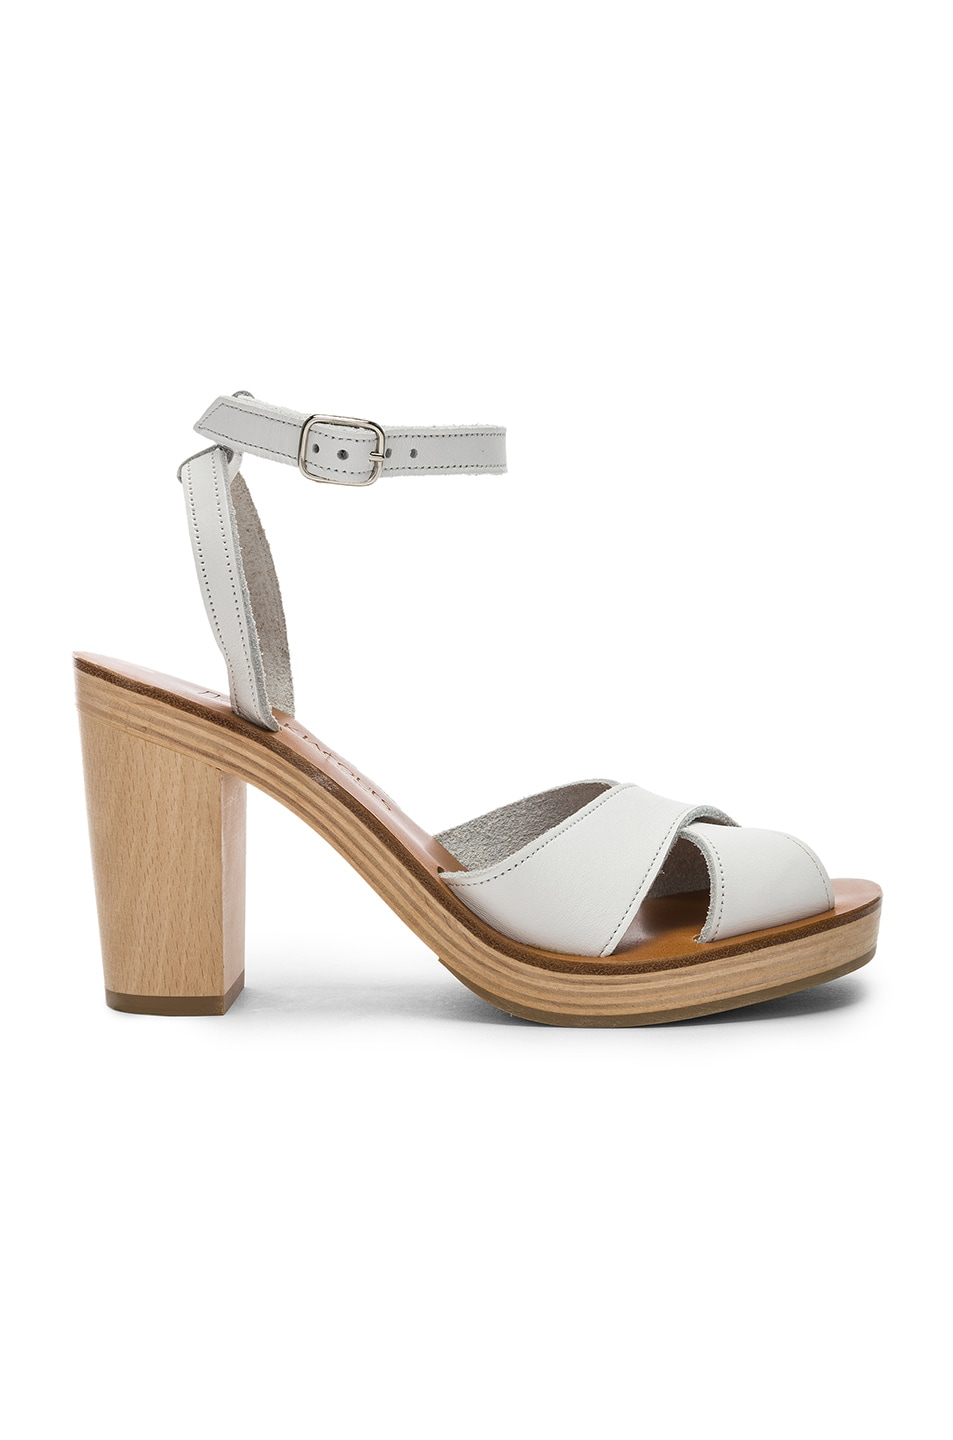 Image 1 of K Jacques Figuier Sandal in Pul Blanc